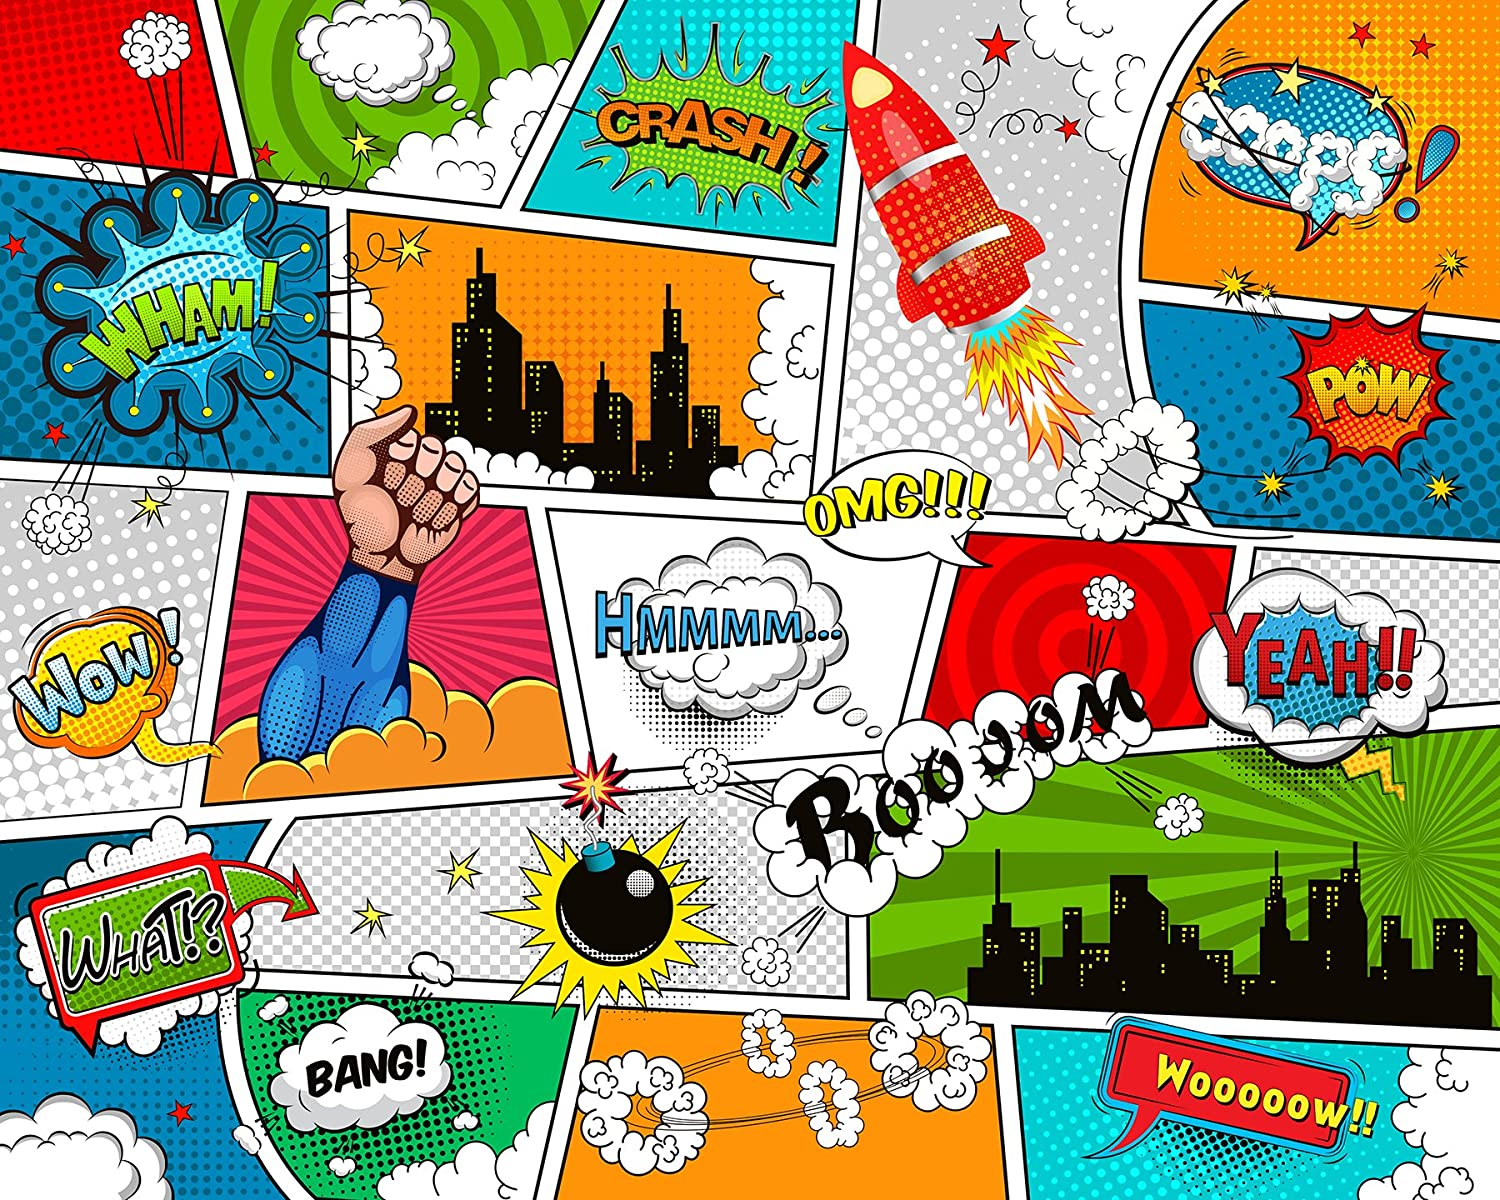 Wall Rogues WR50589 Comic Wall Mural Red